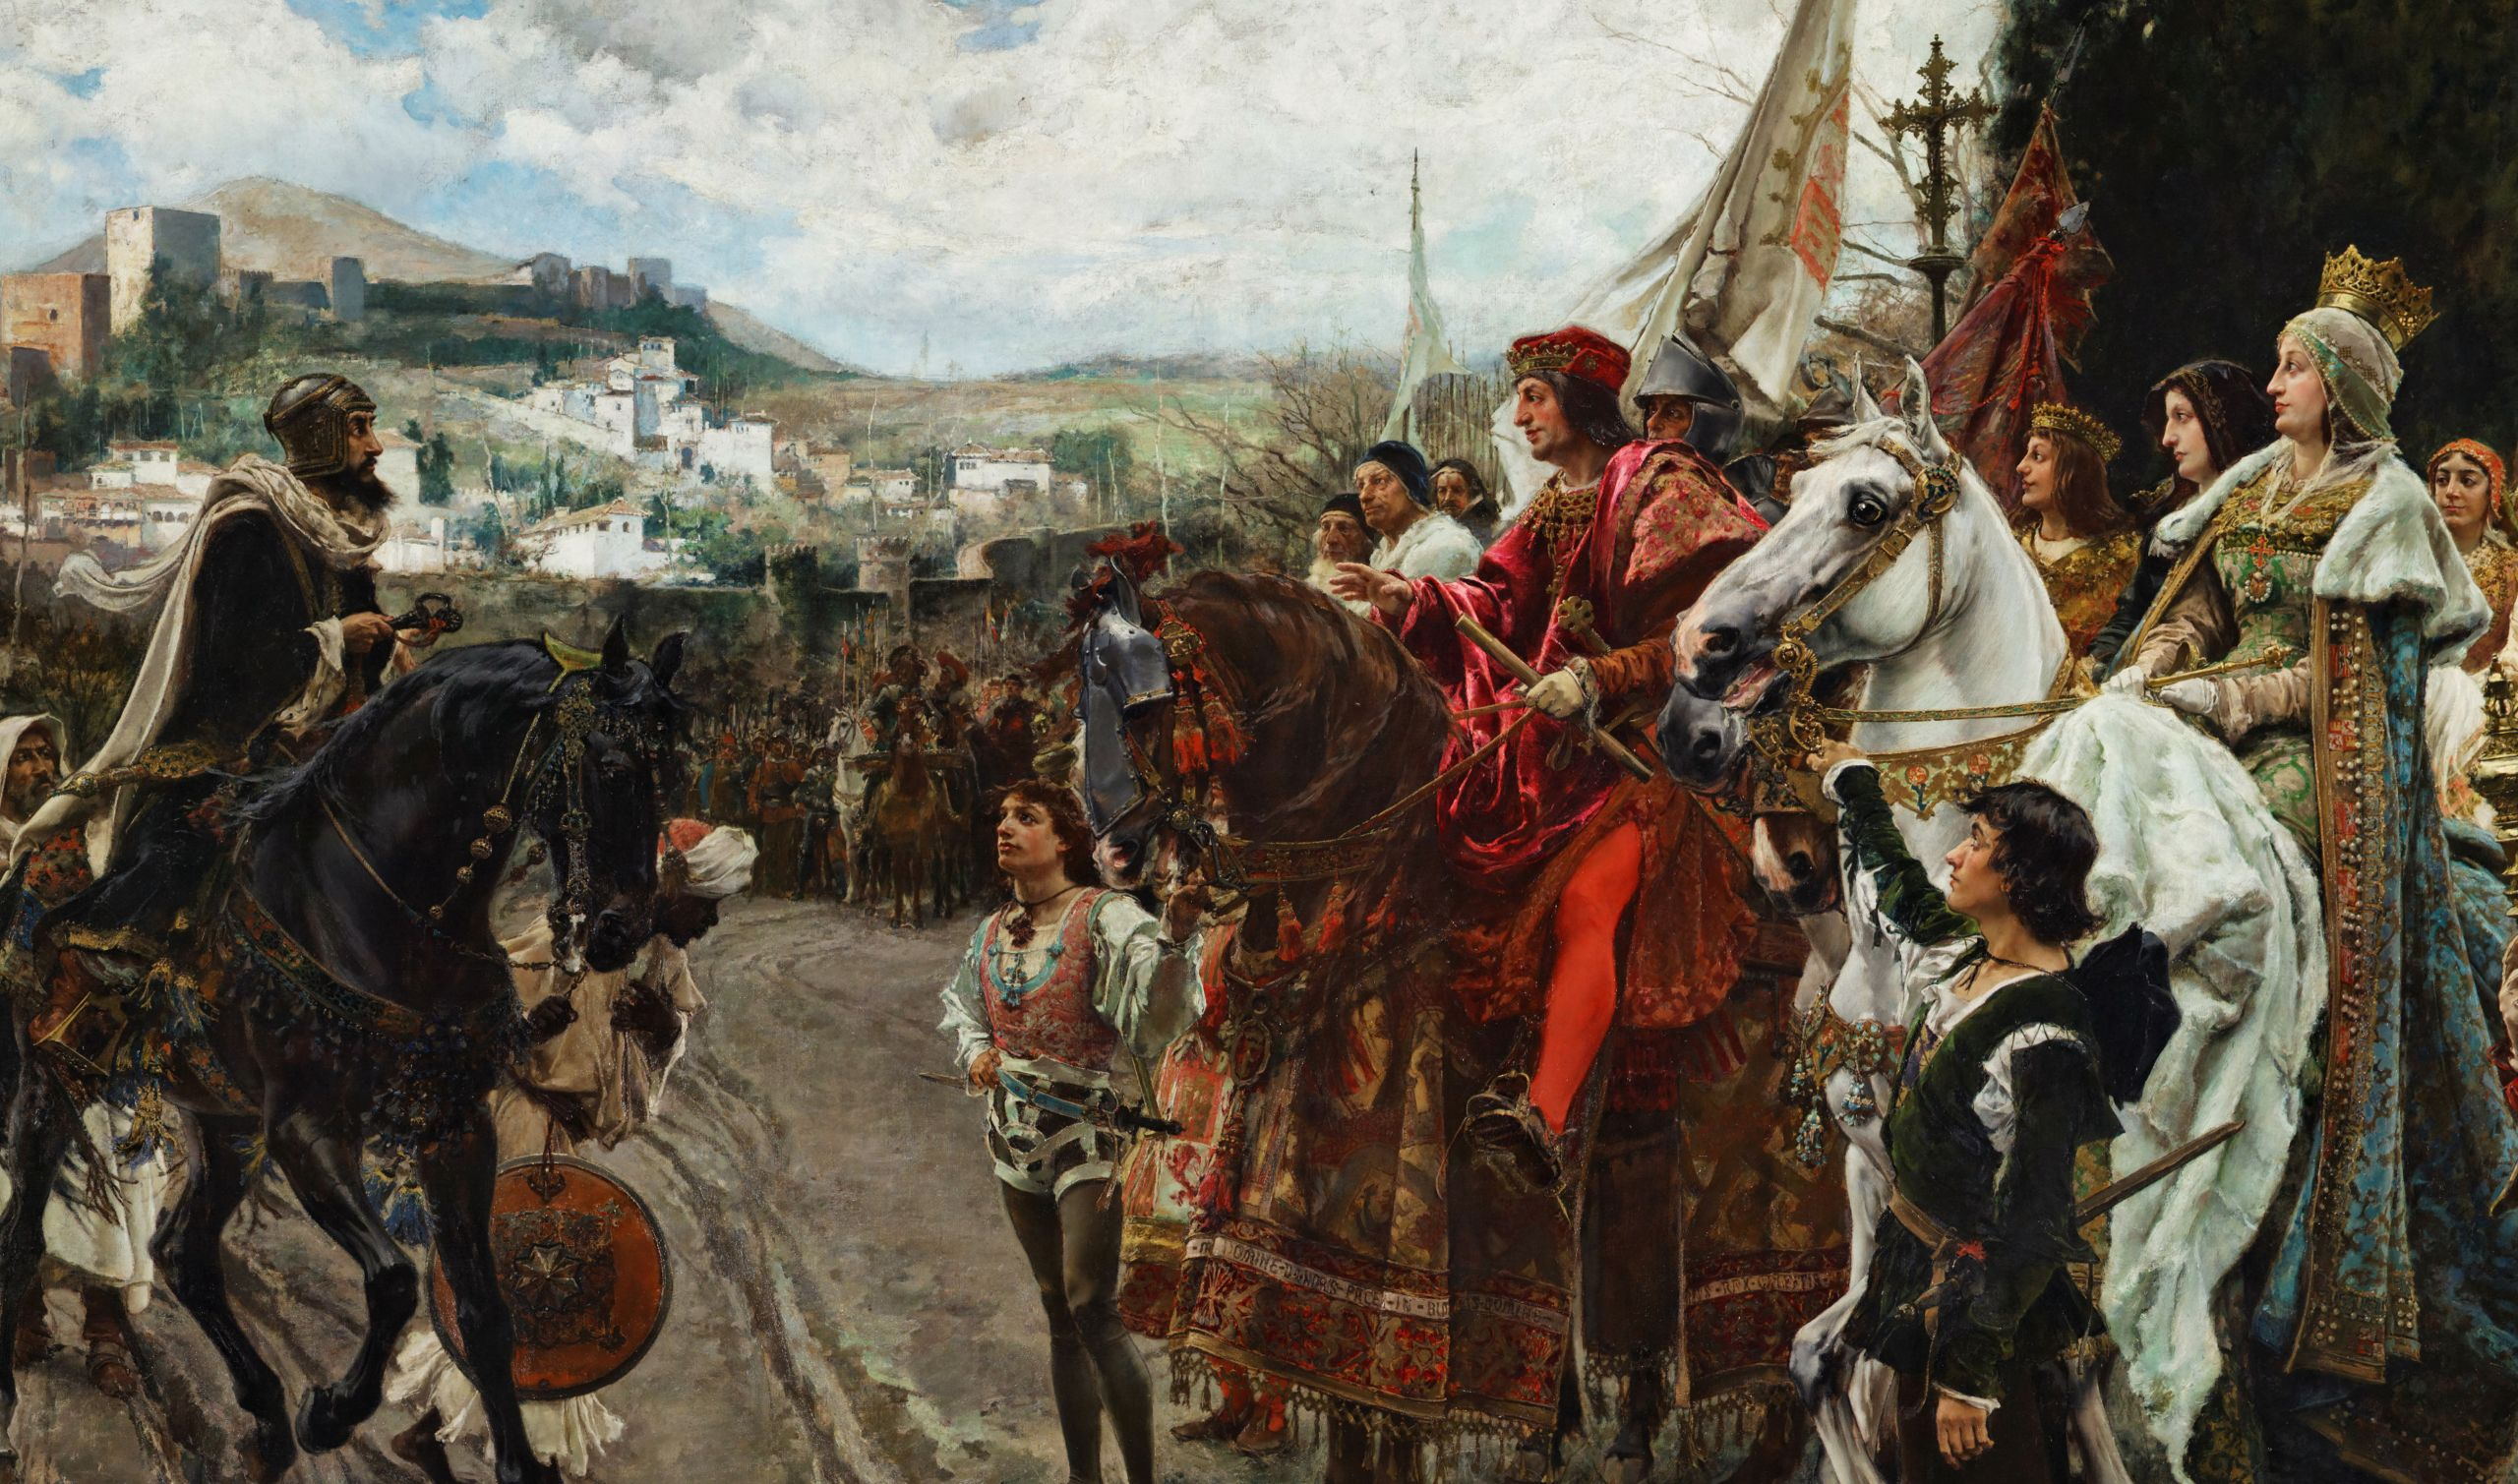 Francisco Pradilla Ortiz, La Rendición de Granada (oil on canvas, 1882).